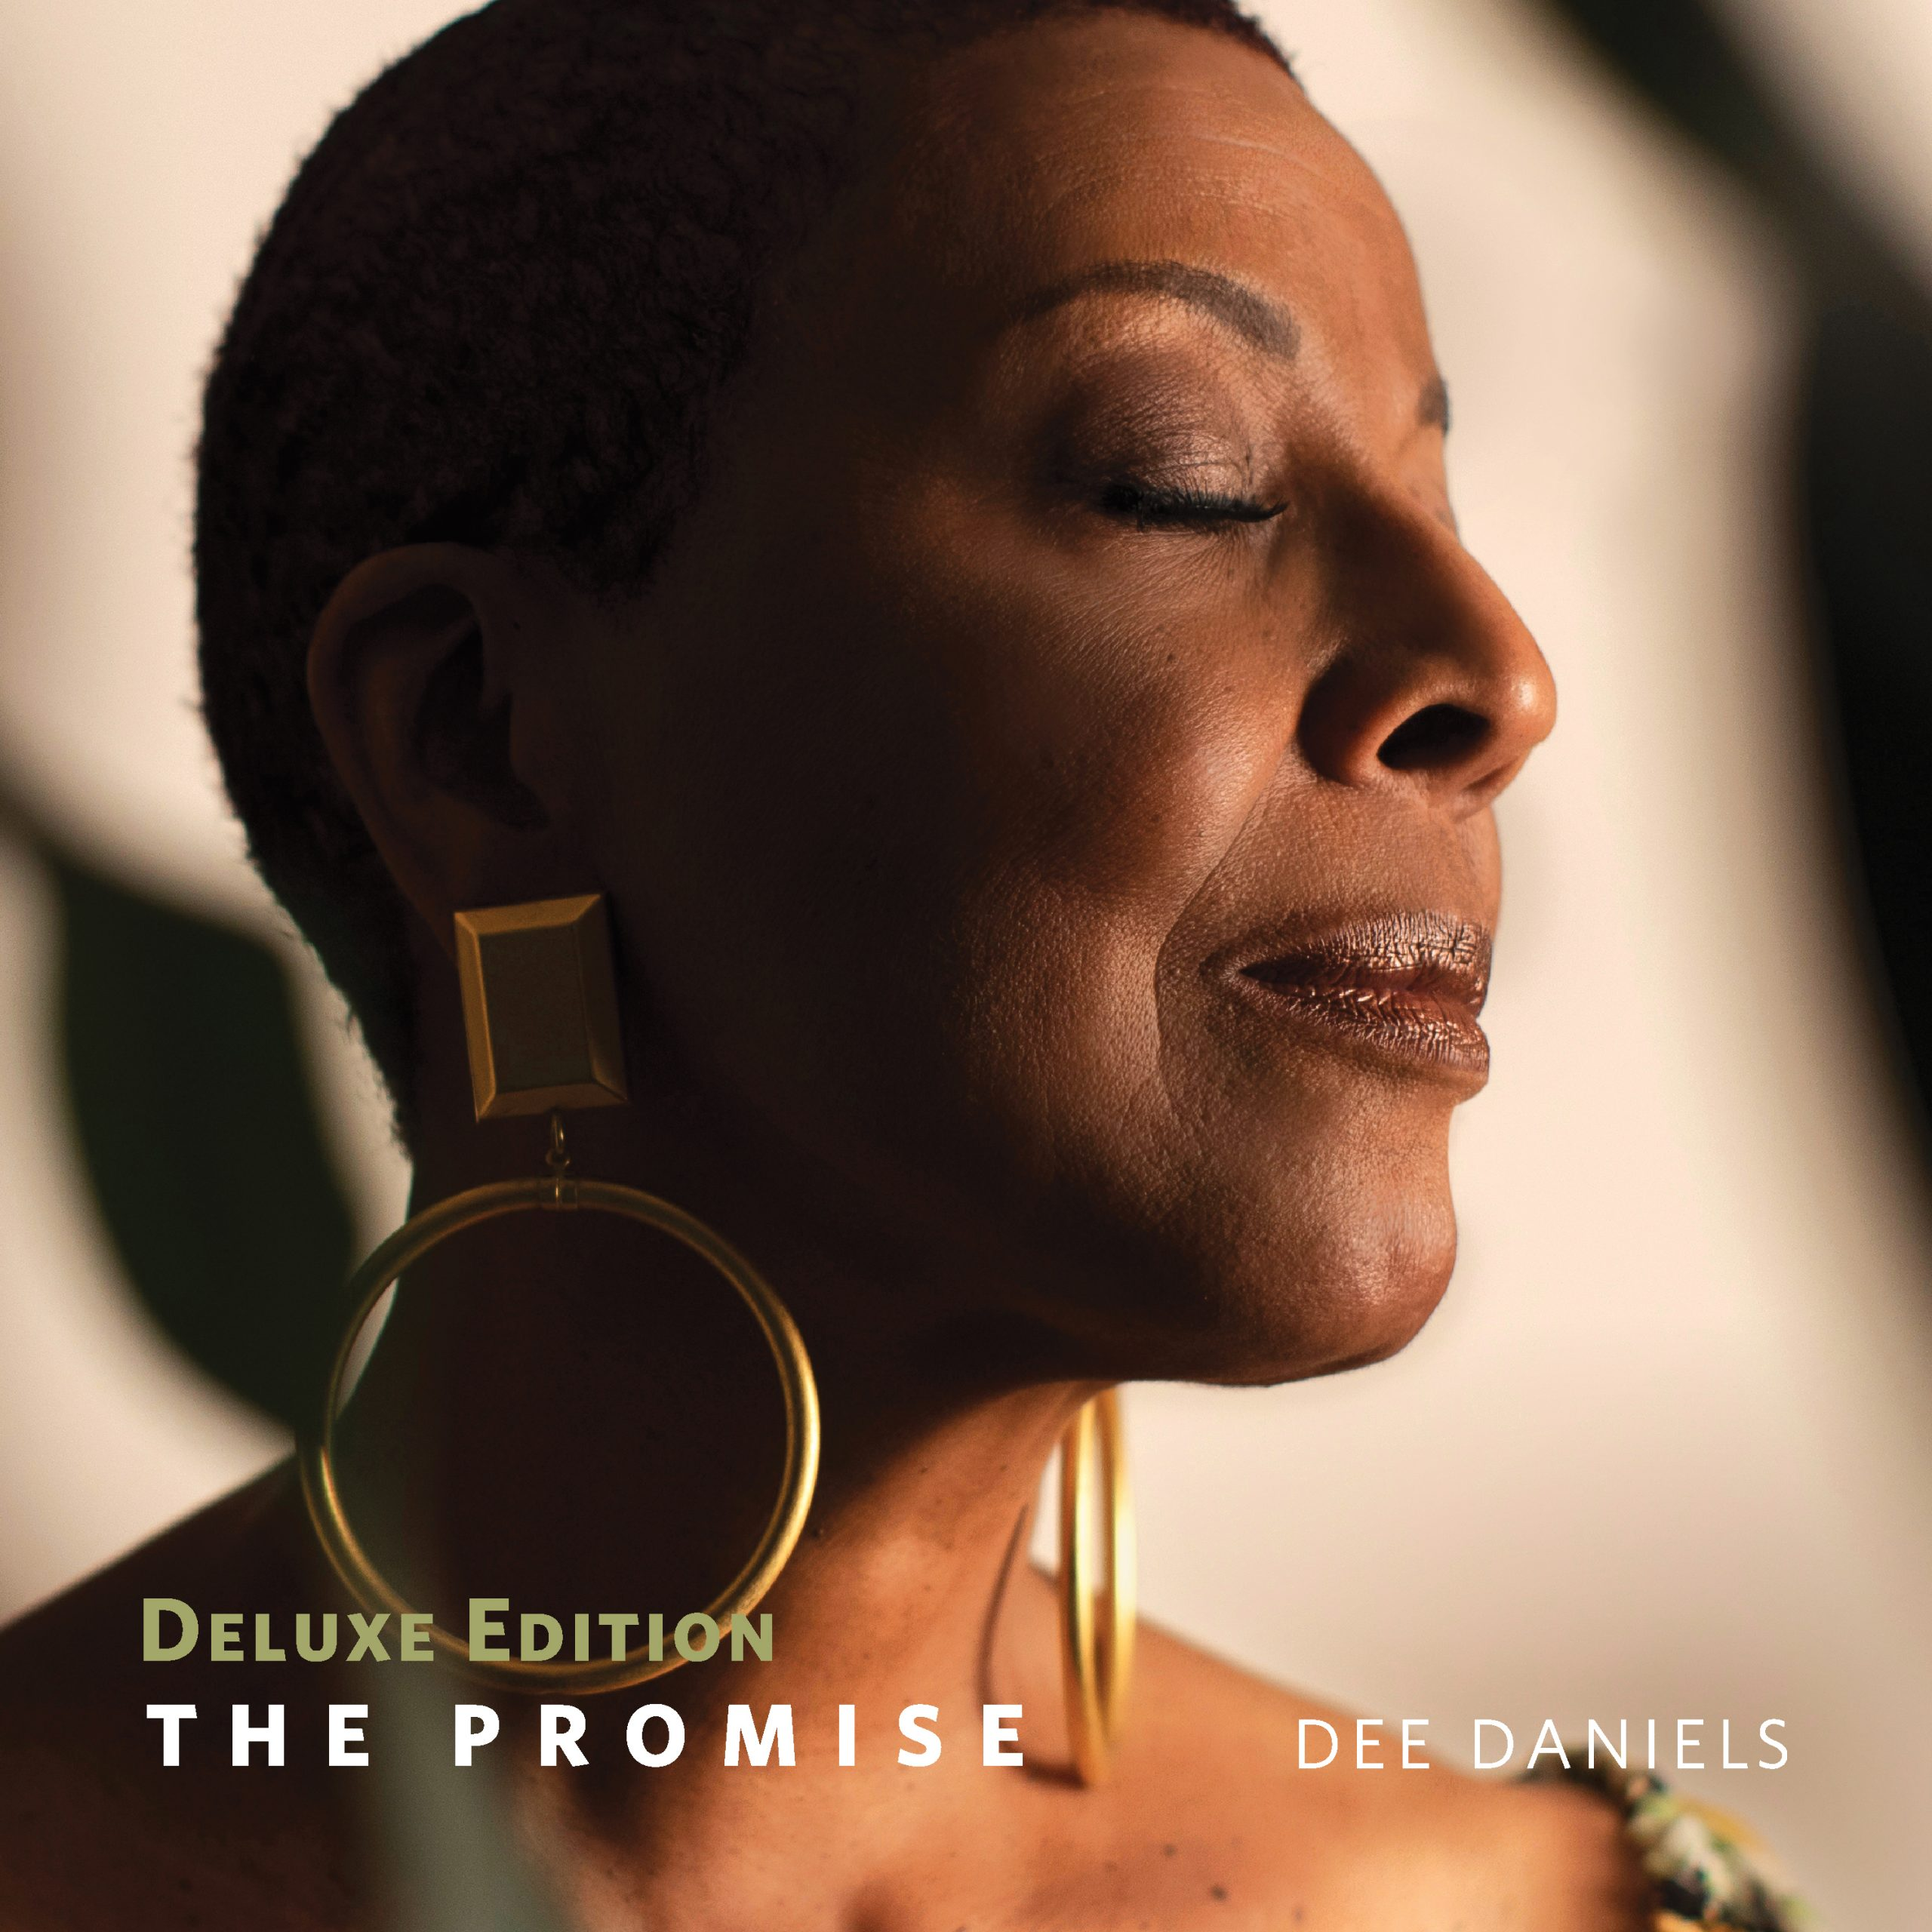 """VIDEO PREMIERE: Dee Daniels' Video Premiere for """"One Moment In Time"""" on Soul Tracks"""